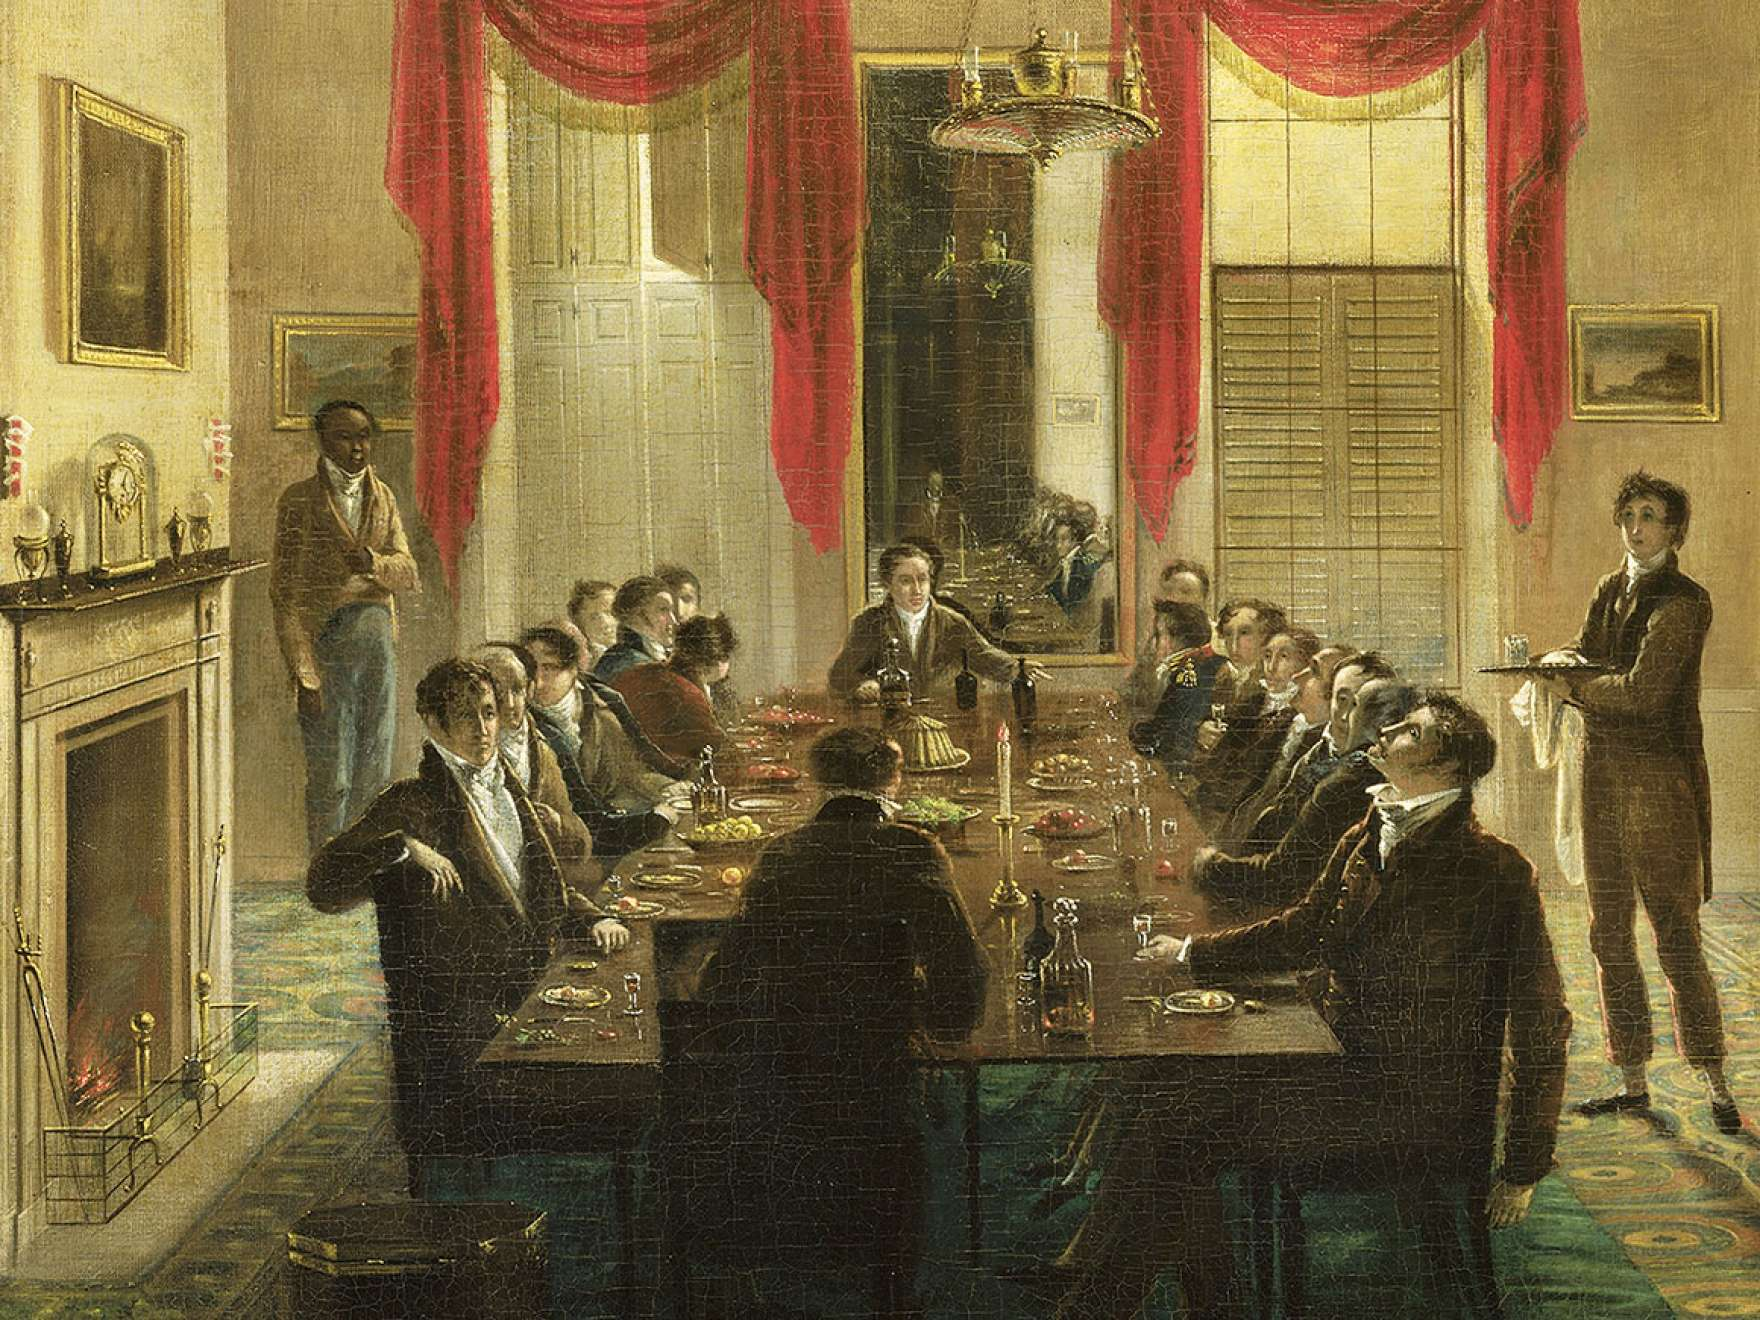 Detail of Henry Sargent's painting, The Dinner Party